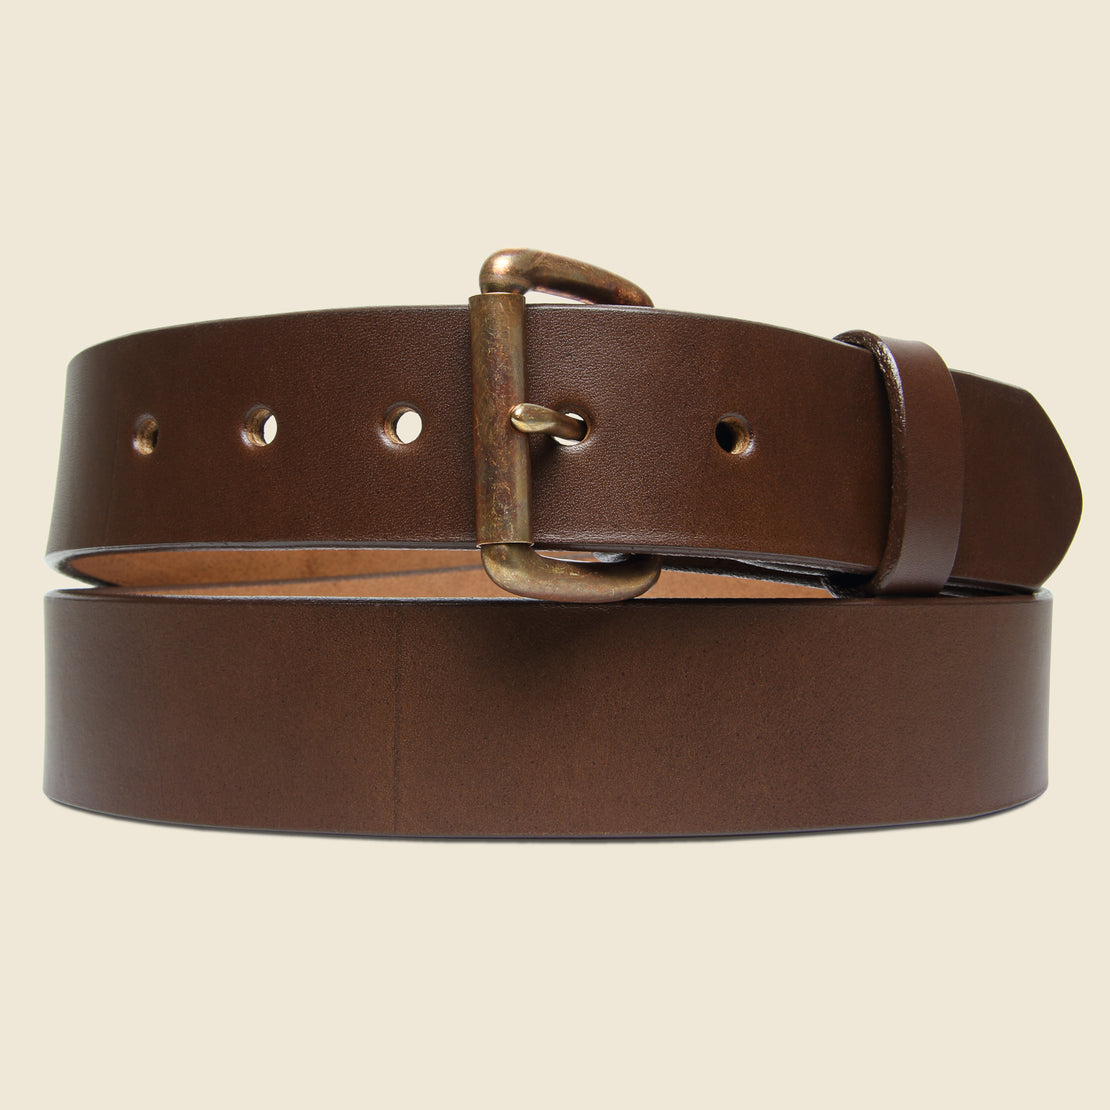 Tanner Standard Belt - Cognac/Copper